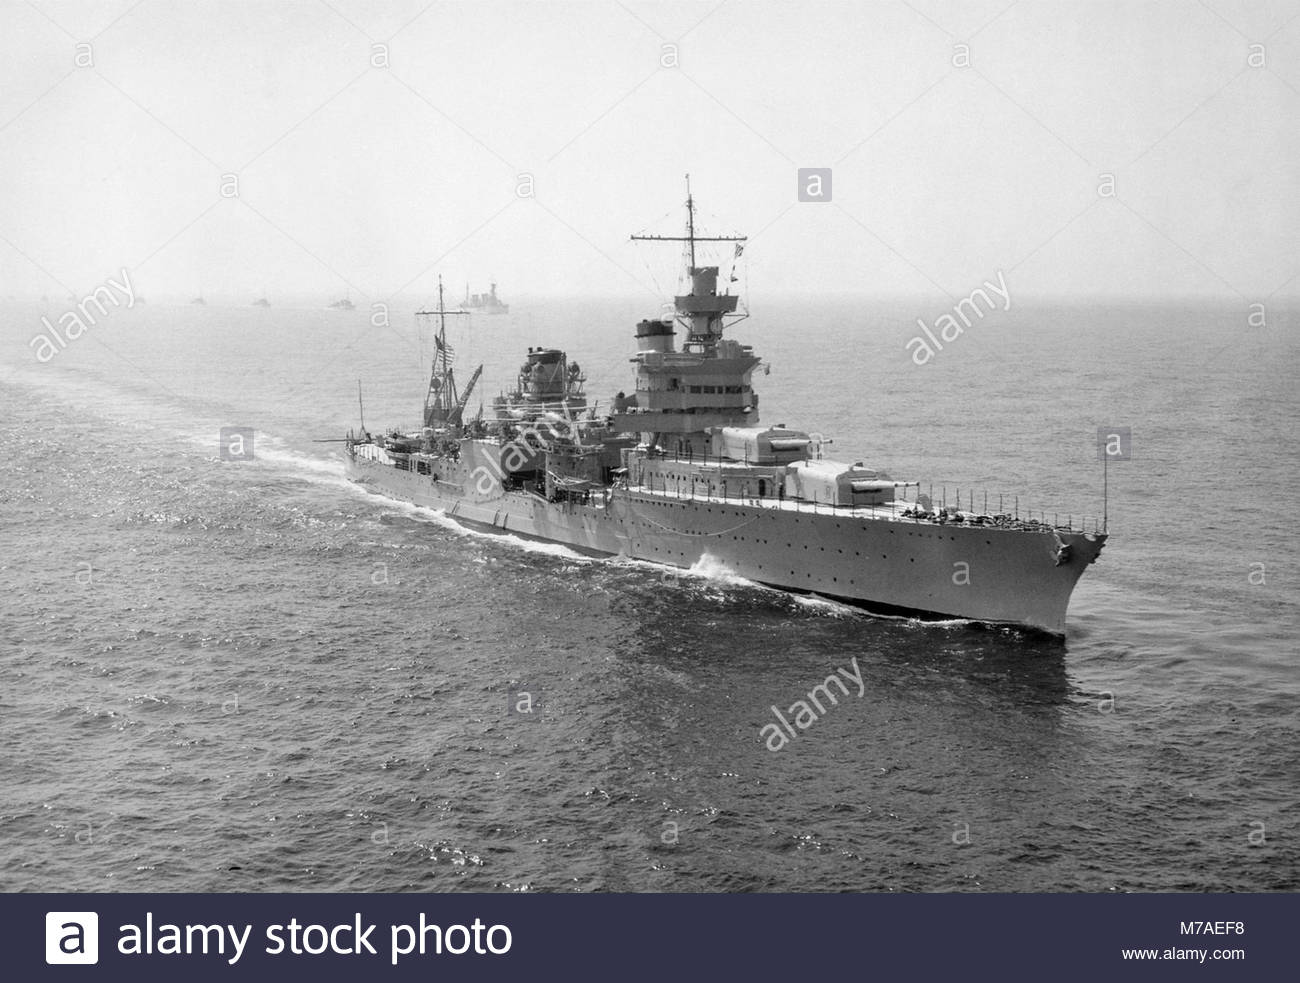 US Navy HEAVY CRUISER USS Indianapolis (CA-35). Foto de stock